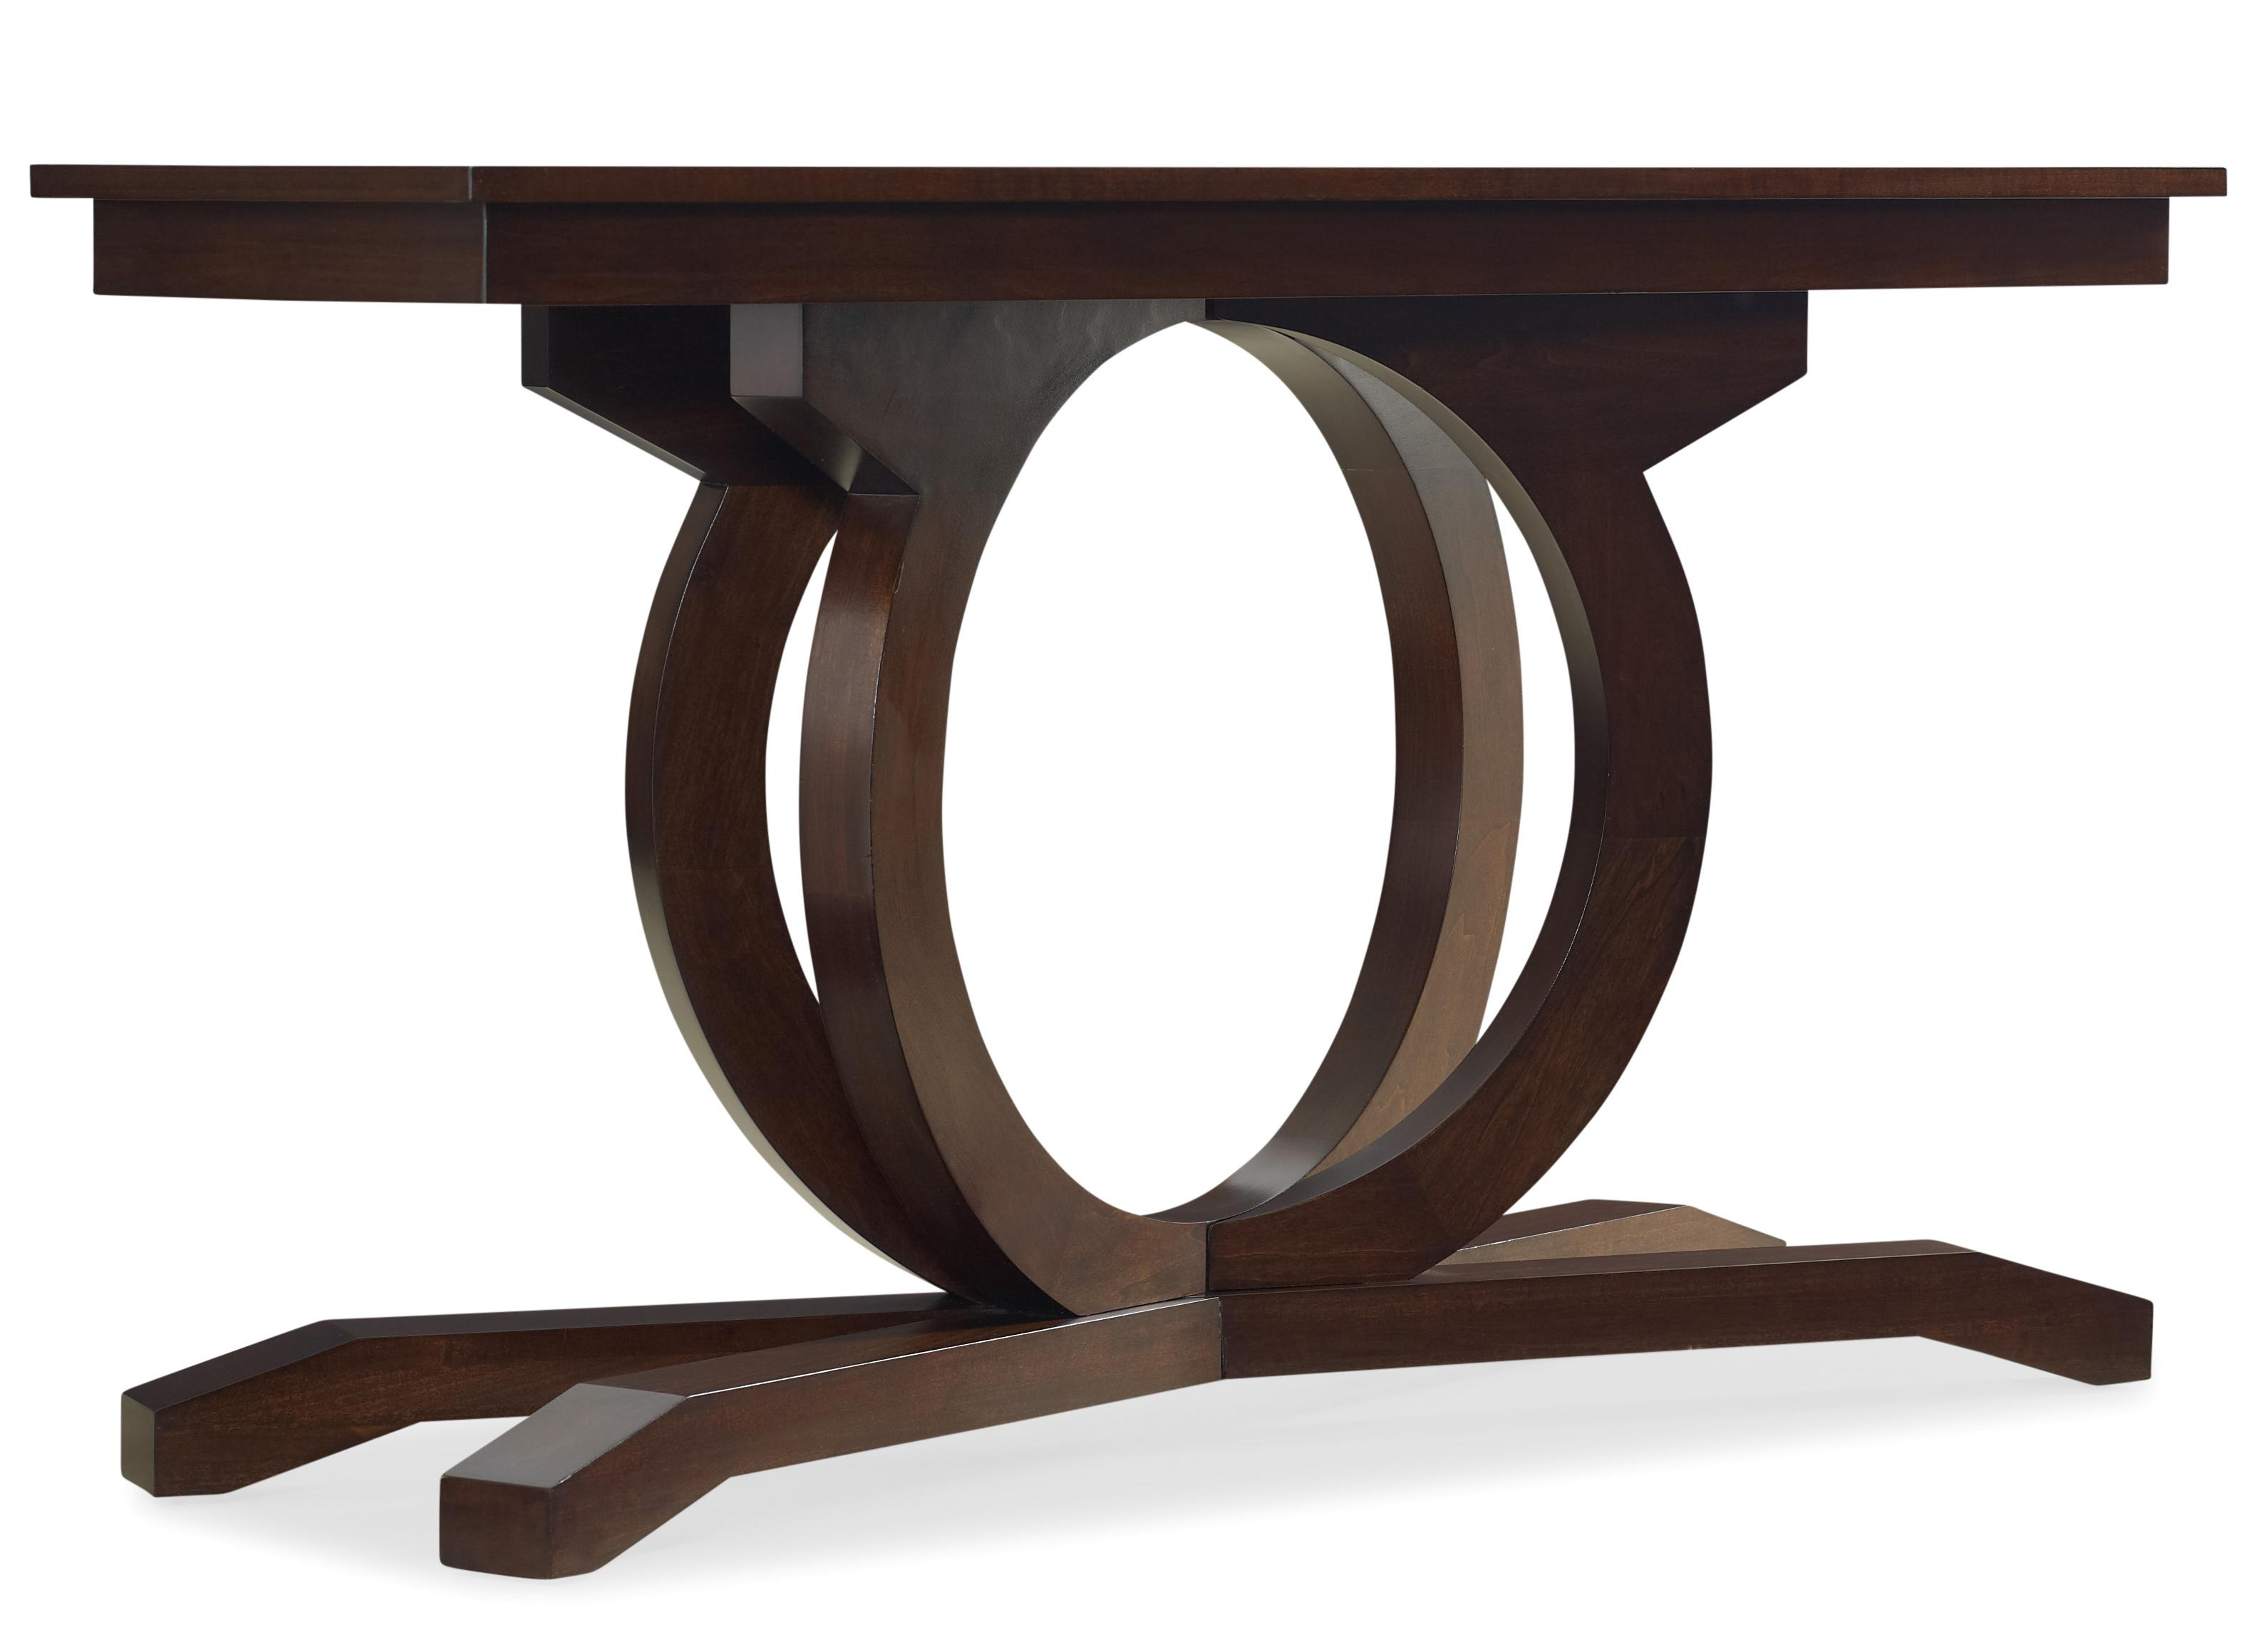 Hooker Furniture Kinsey Sofa Table - Item Number: 5066-80161